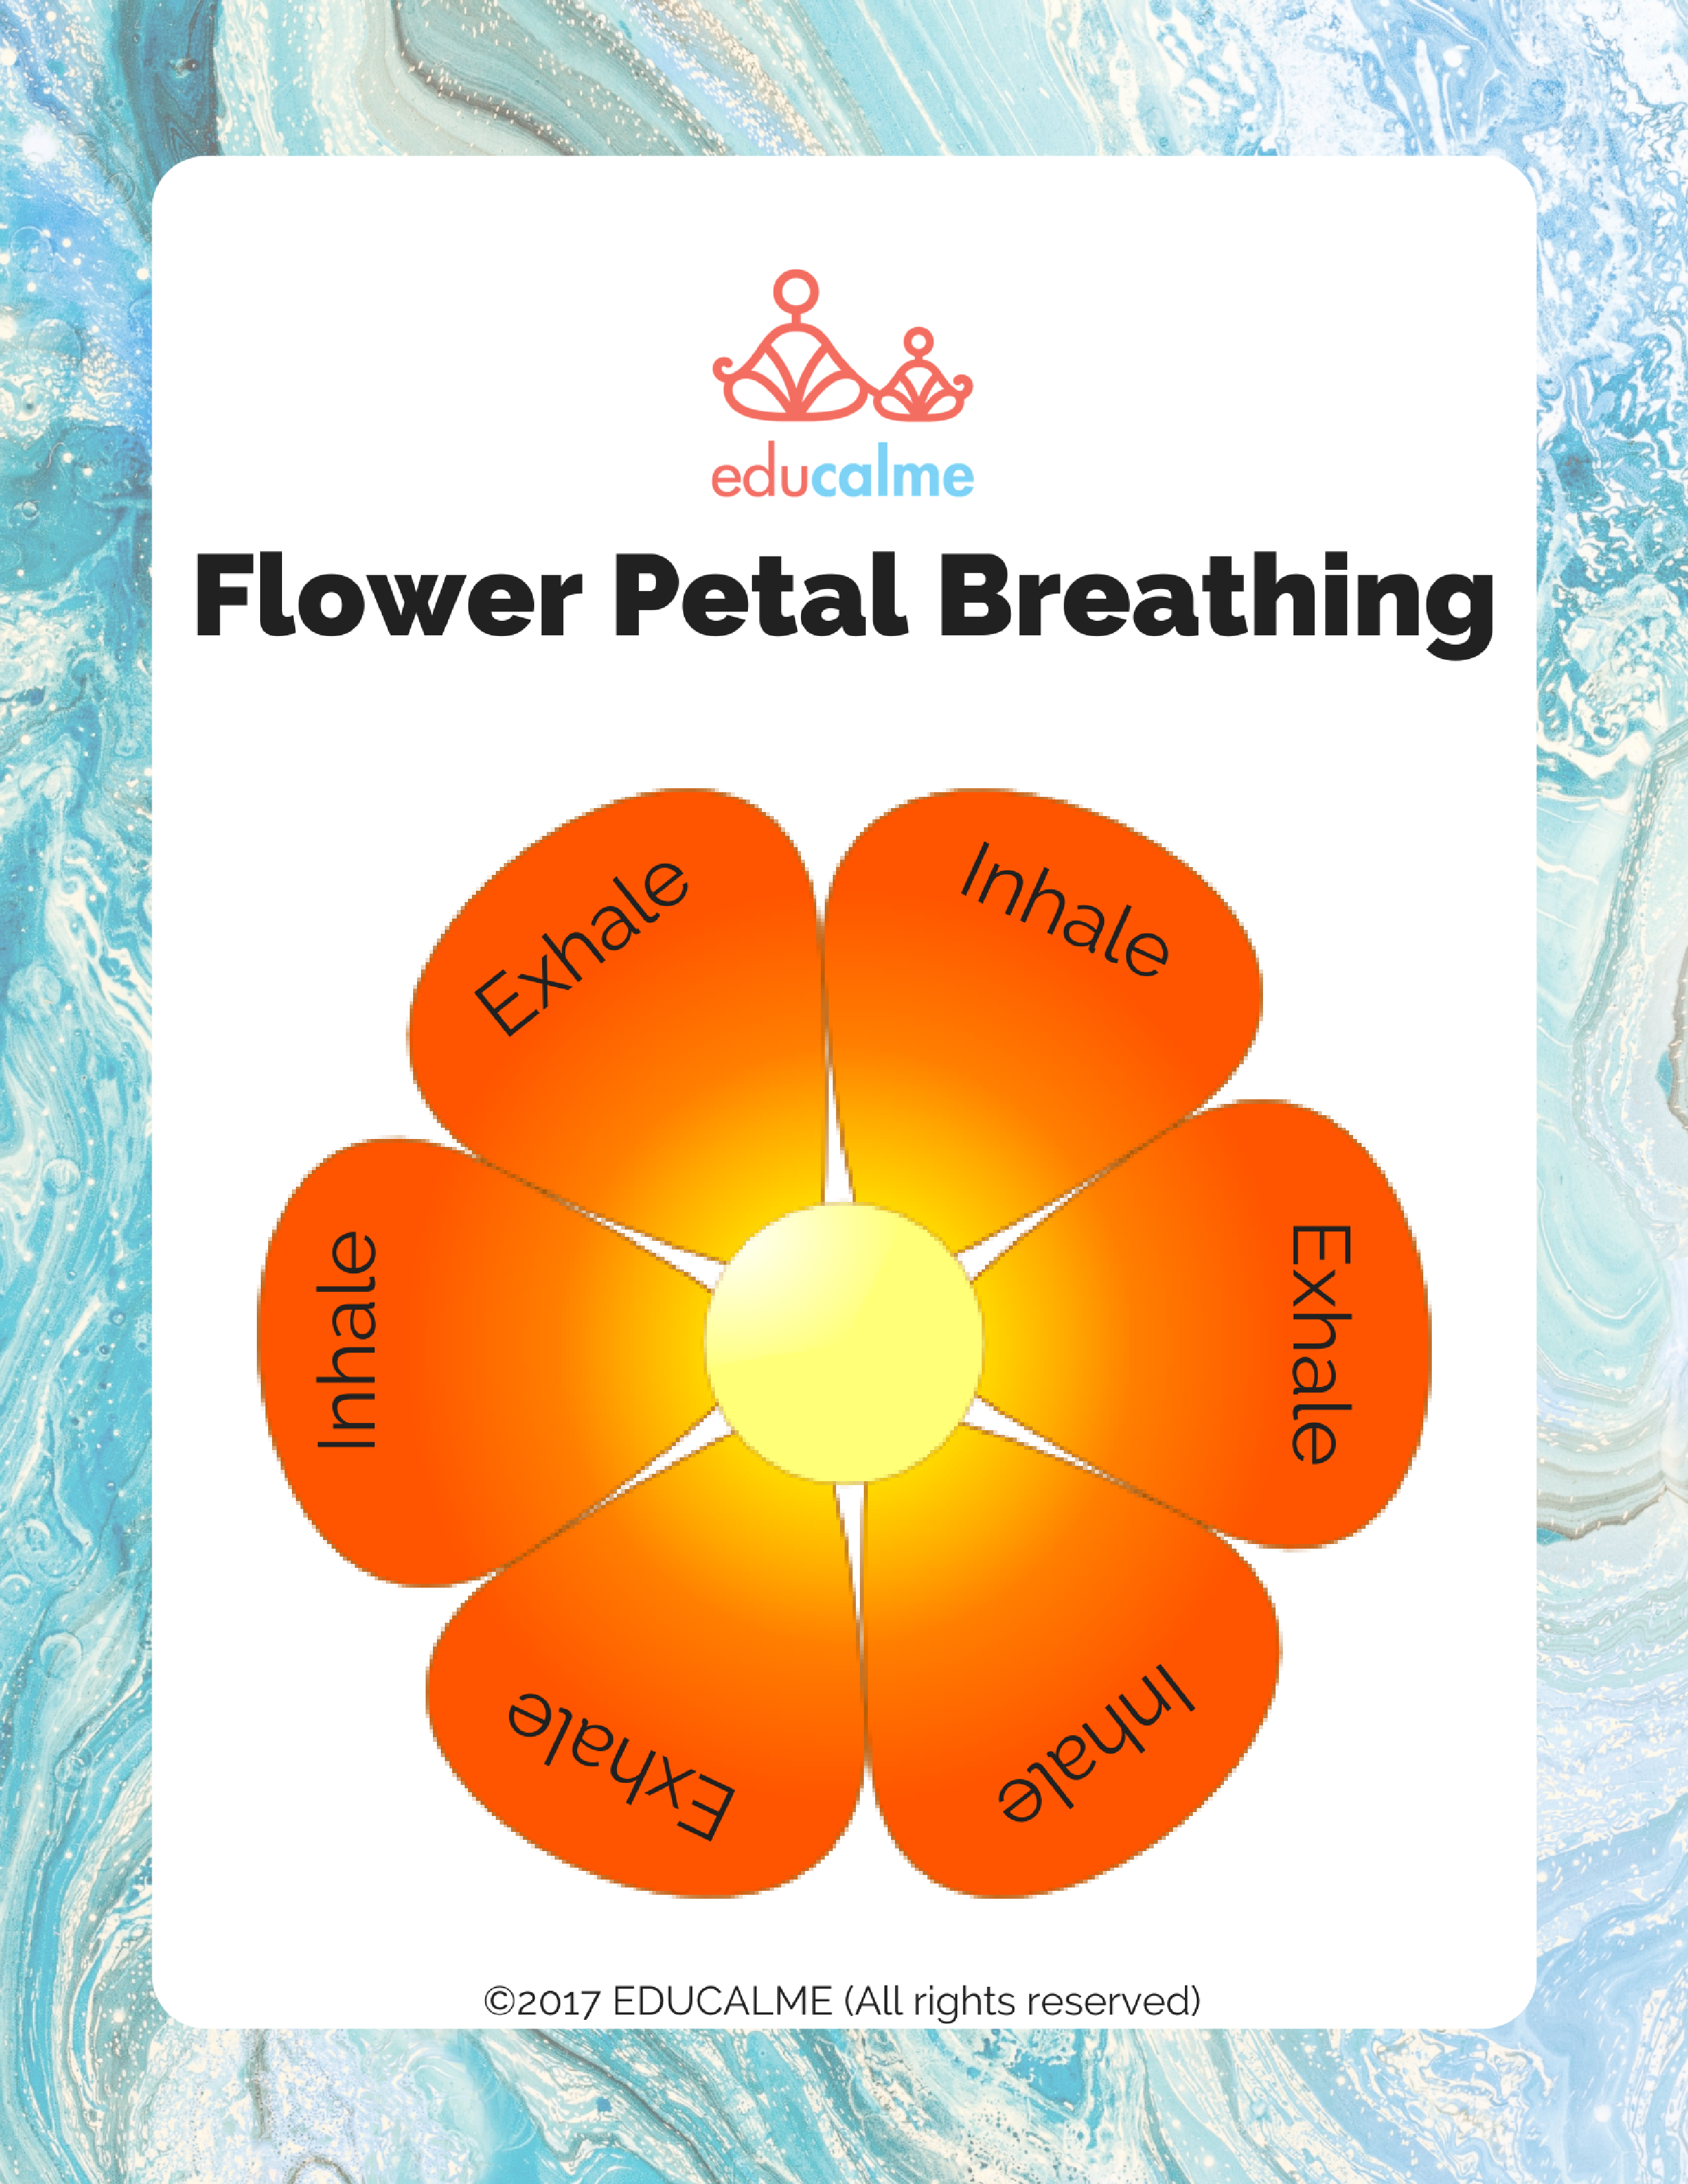 Free Flower Petal Breathing Poster In English And French